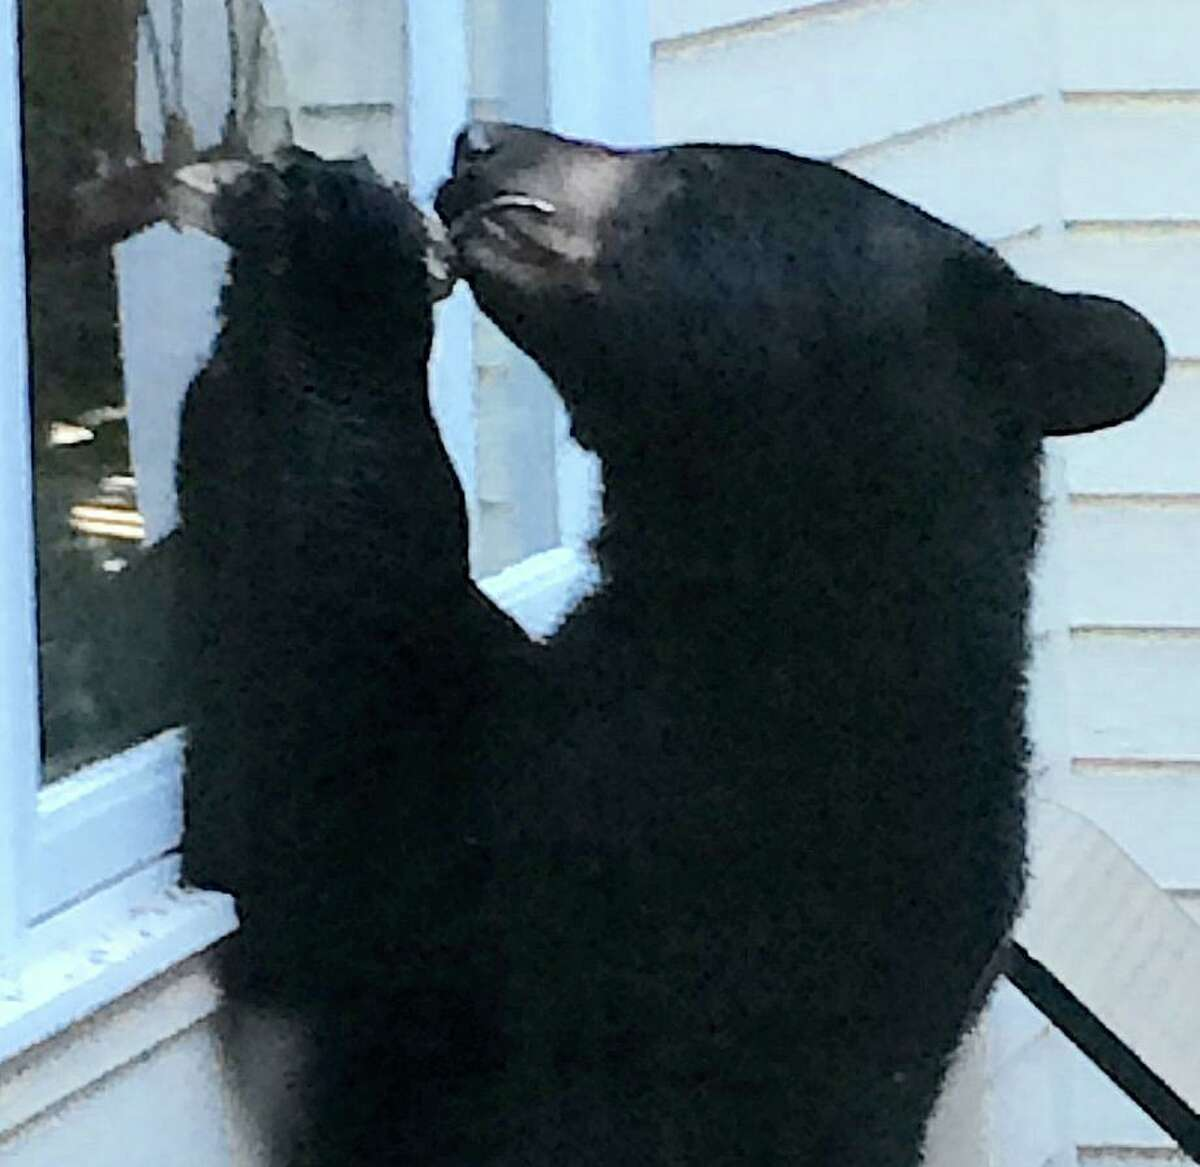 Black bears were spotted prowling through local neighborhoods several times last summer, none more dramatically than when Barbara Ross-Innamorati snapped this photo of a bear that visited her Charcoal Hill Commons home's deck.